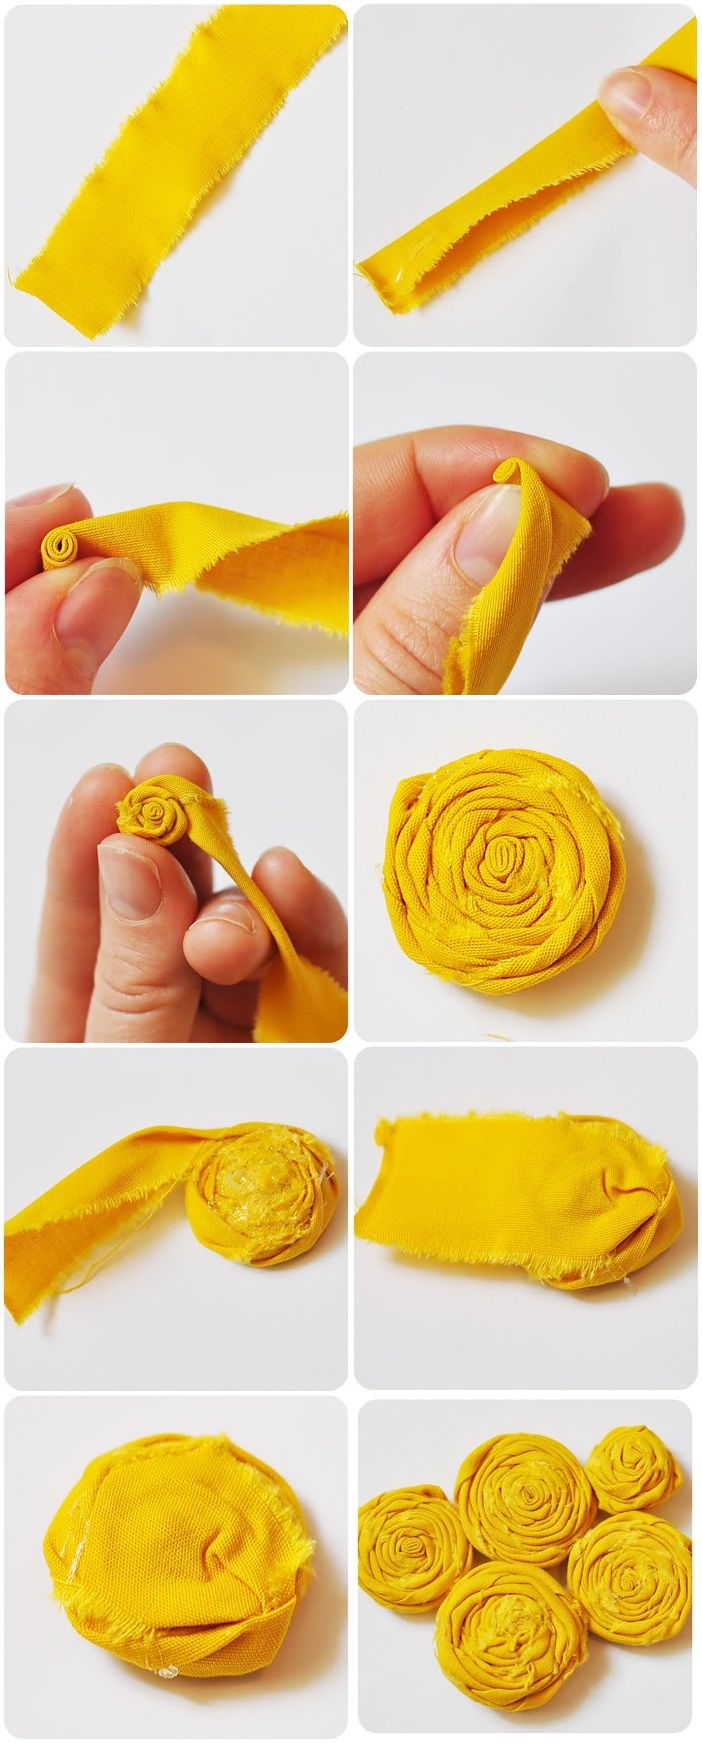 How To Rolled Fabric Flowers Craftsdiy Pinterest Fabric